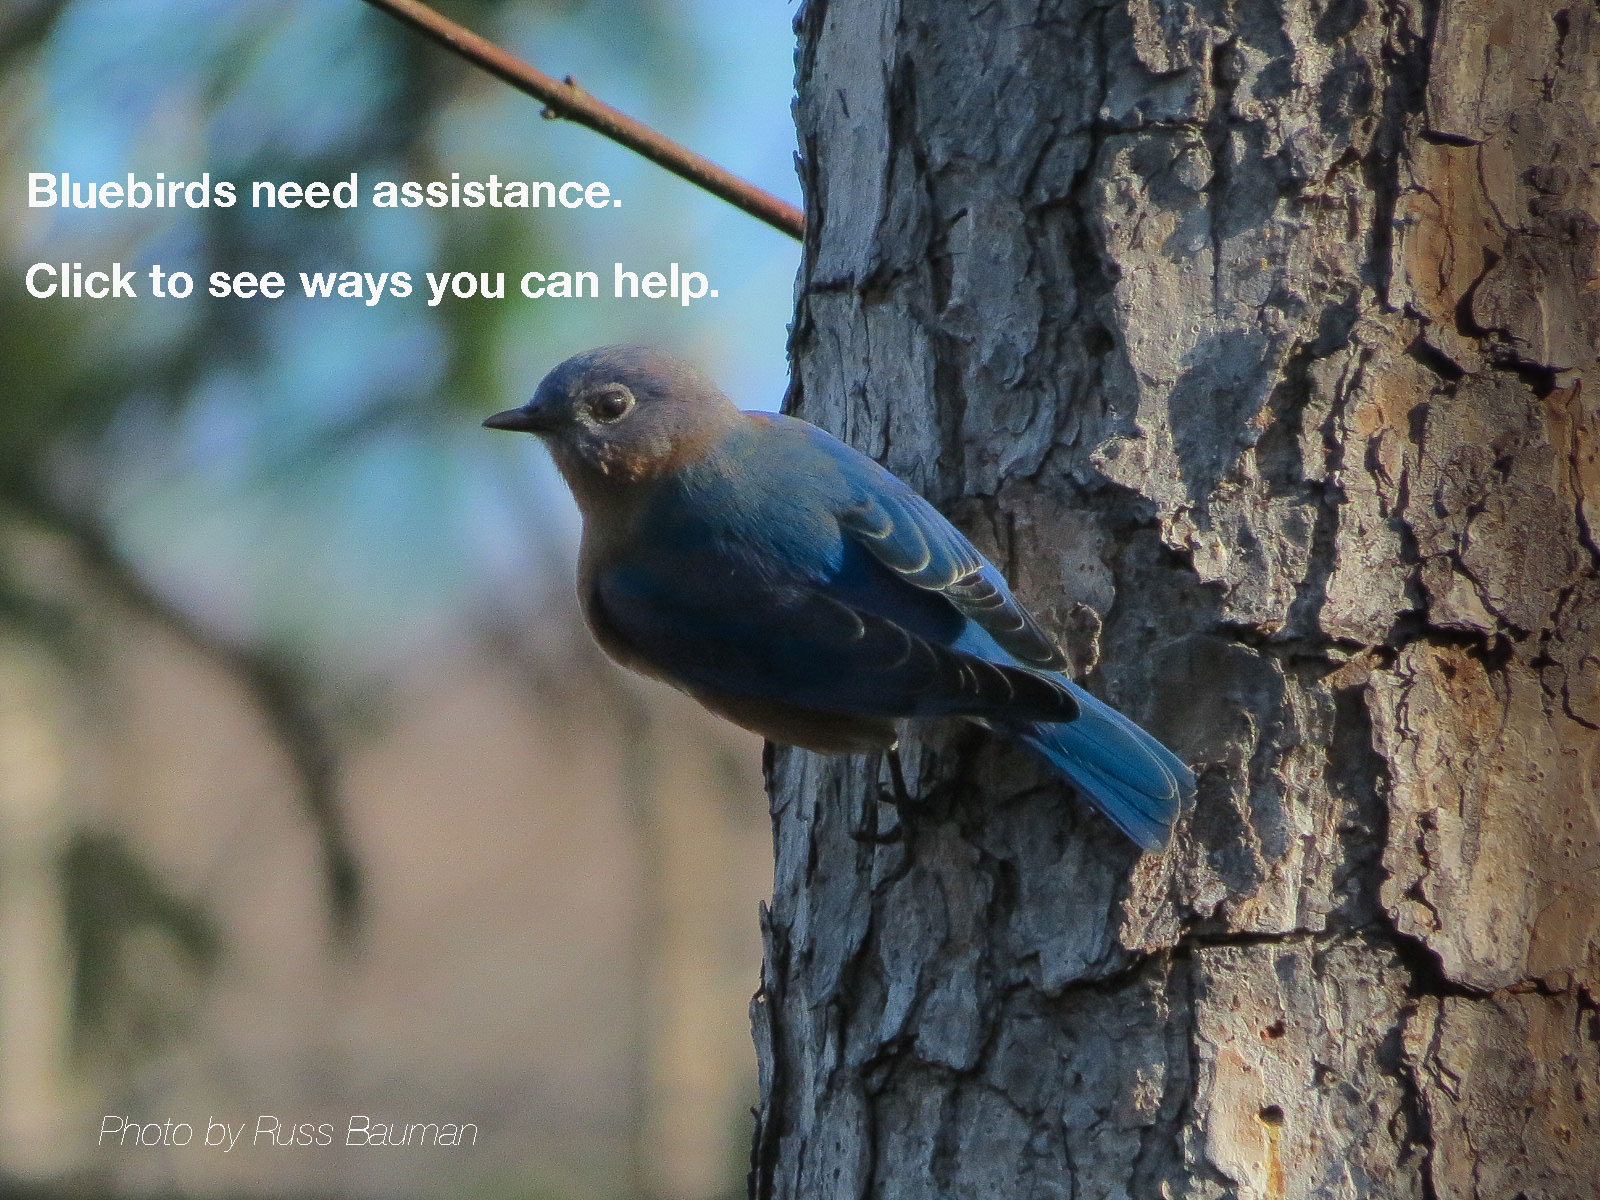 north carolina bluebird society